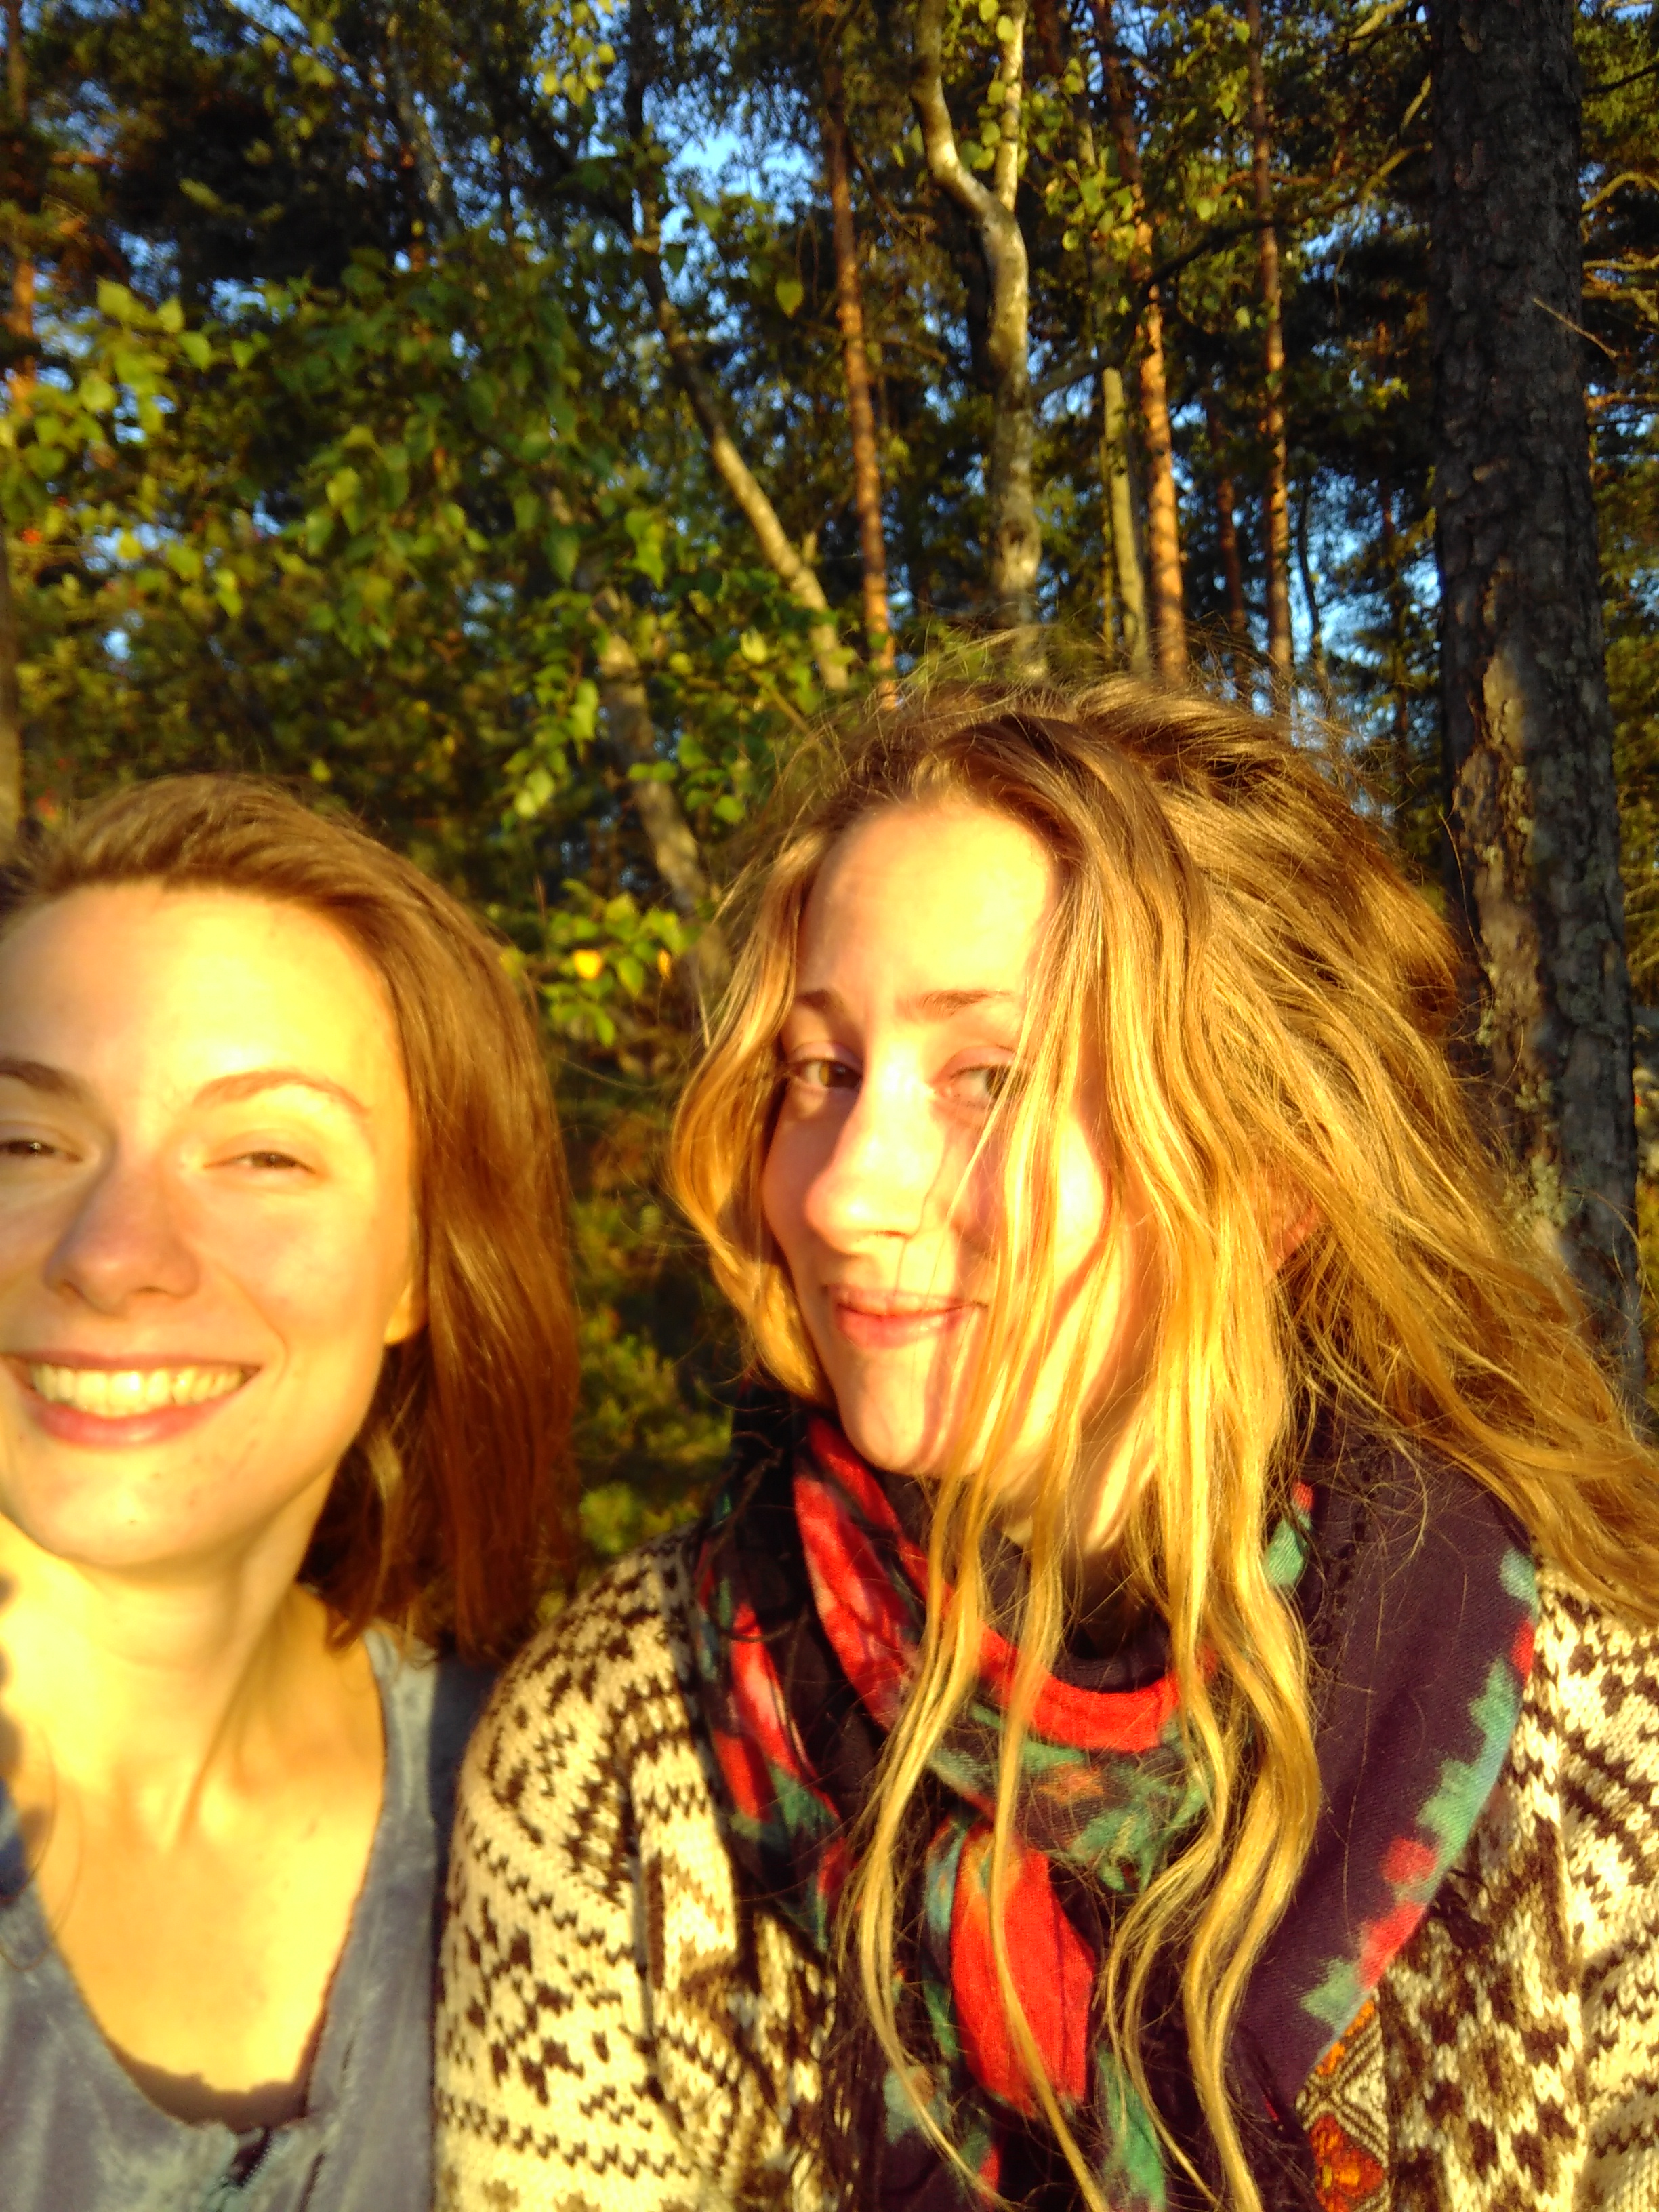 And here we are happy in the sunset after 5 successful shows in Helsinki!